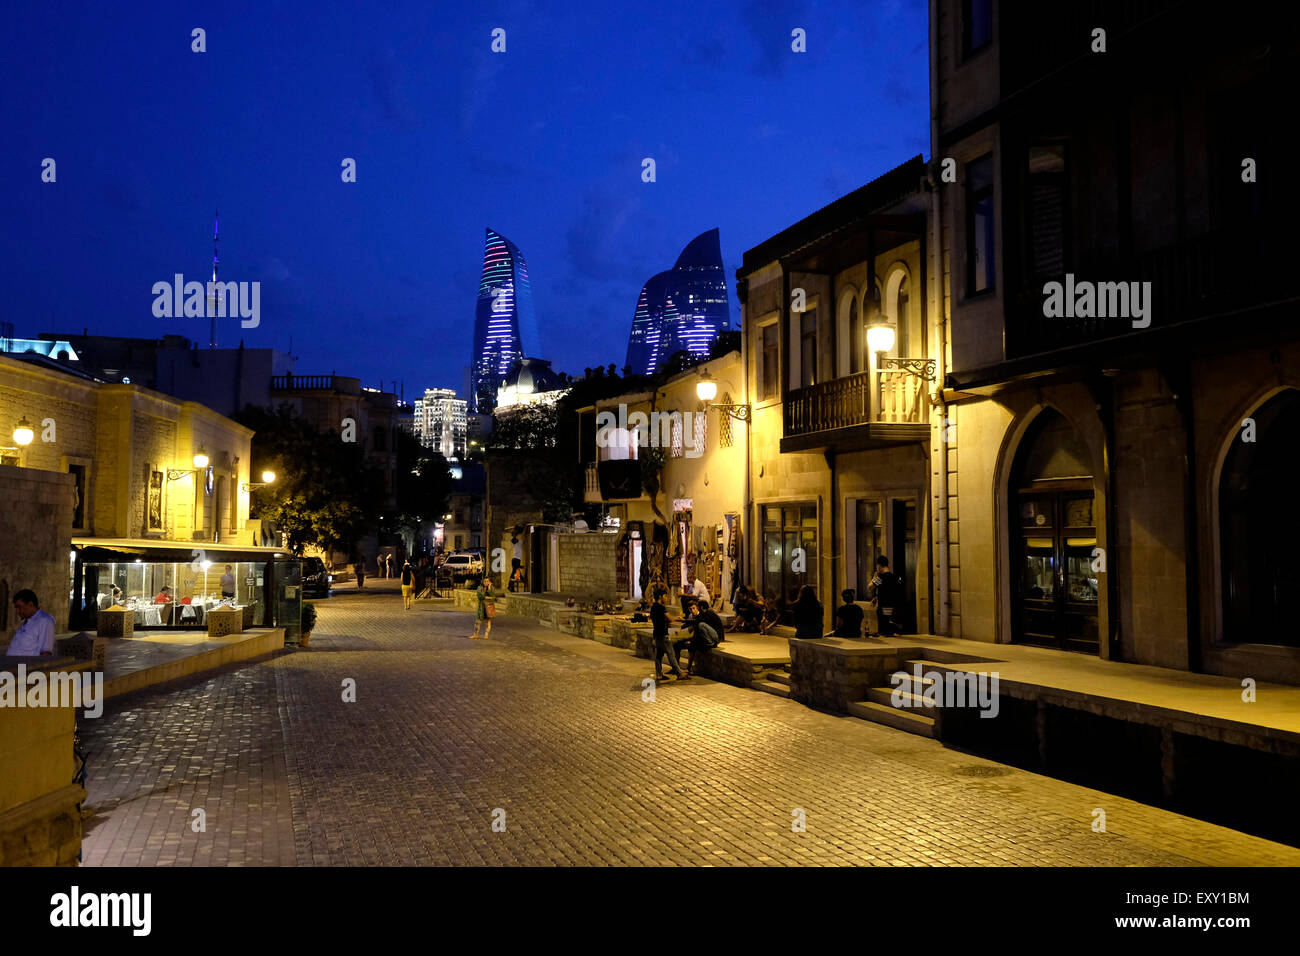 Street scene in Icheri Sheher which is the historical core of Baku listed in UNESCO World Heritage Site list in - Stock Image